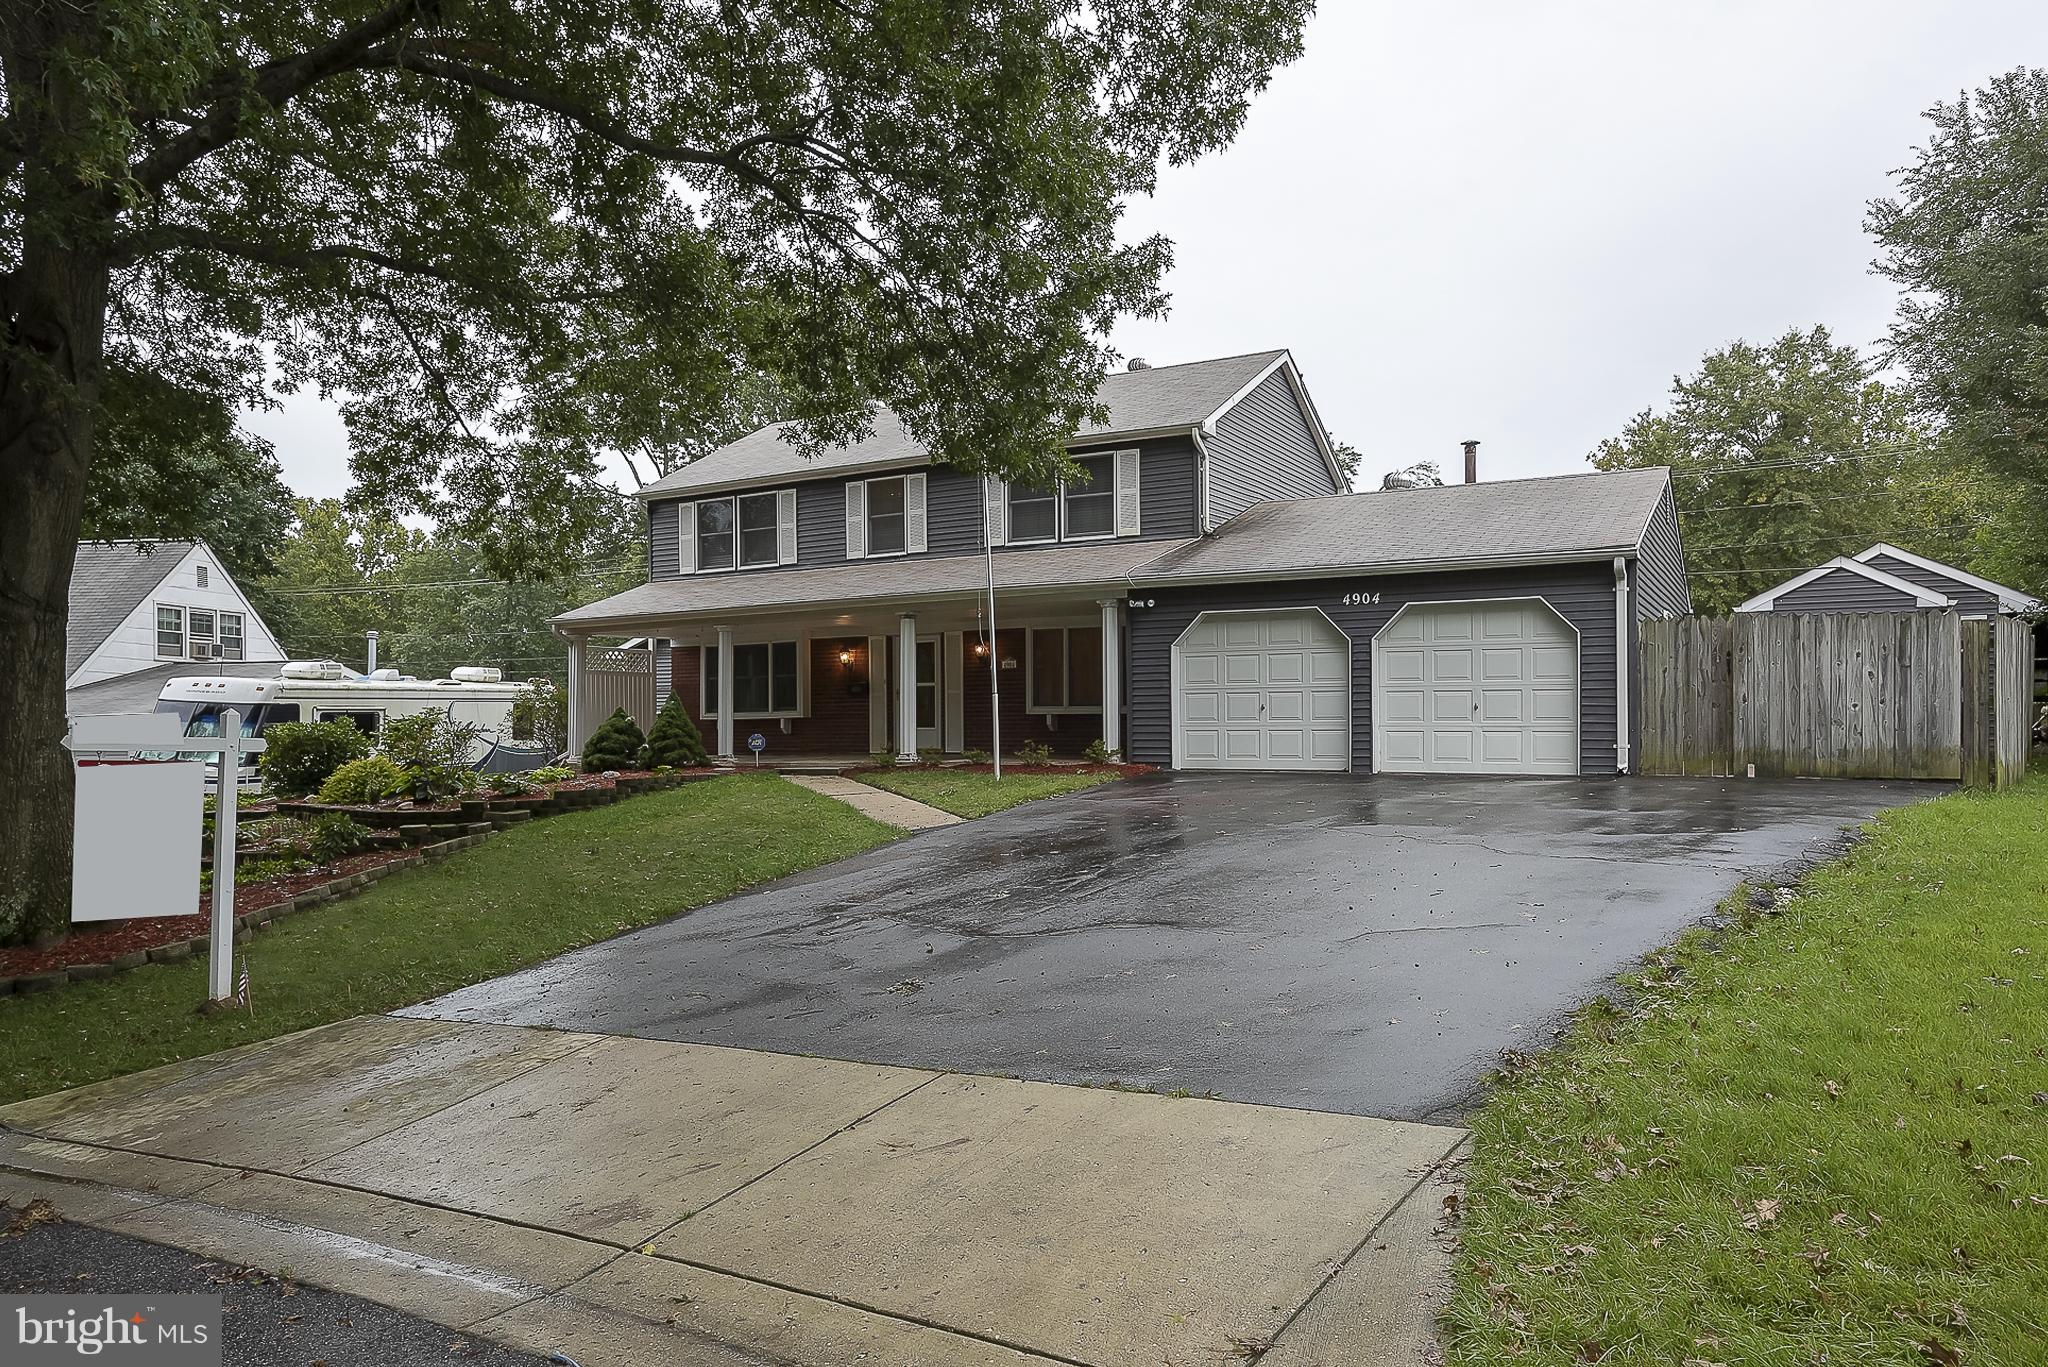 4904 ROCKINGHAM LANE, BOWIE, MD 20715